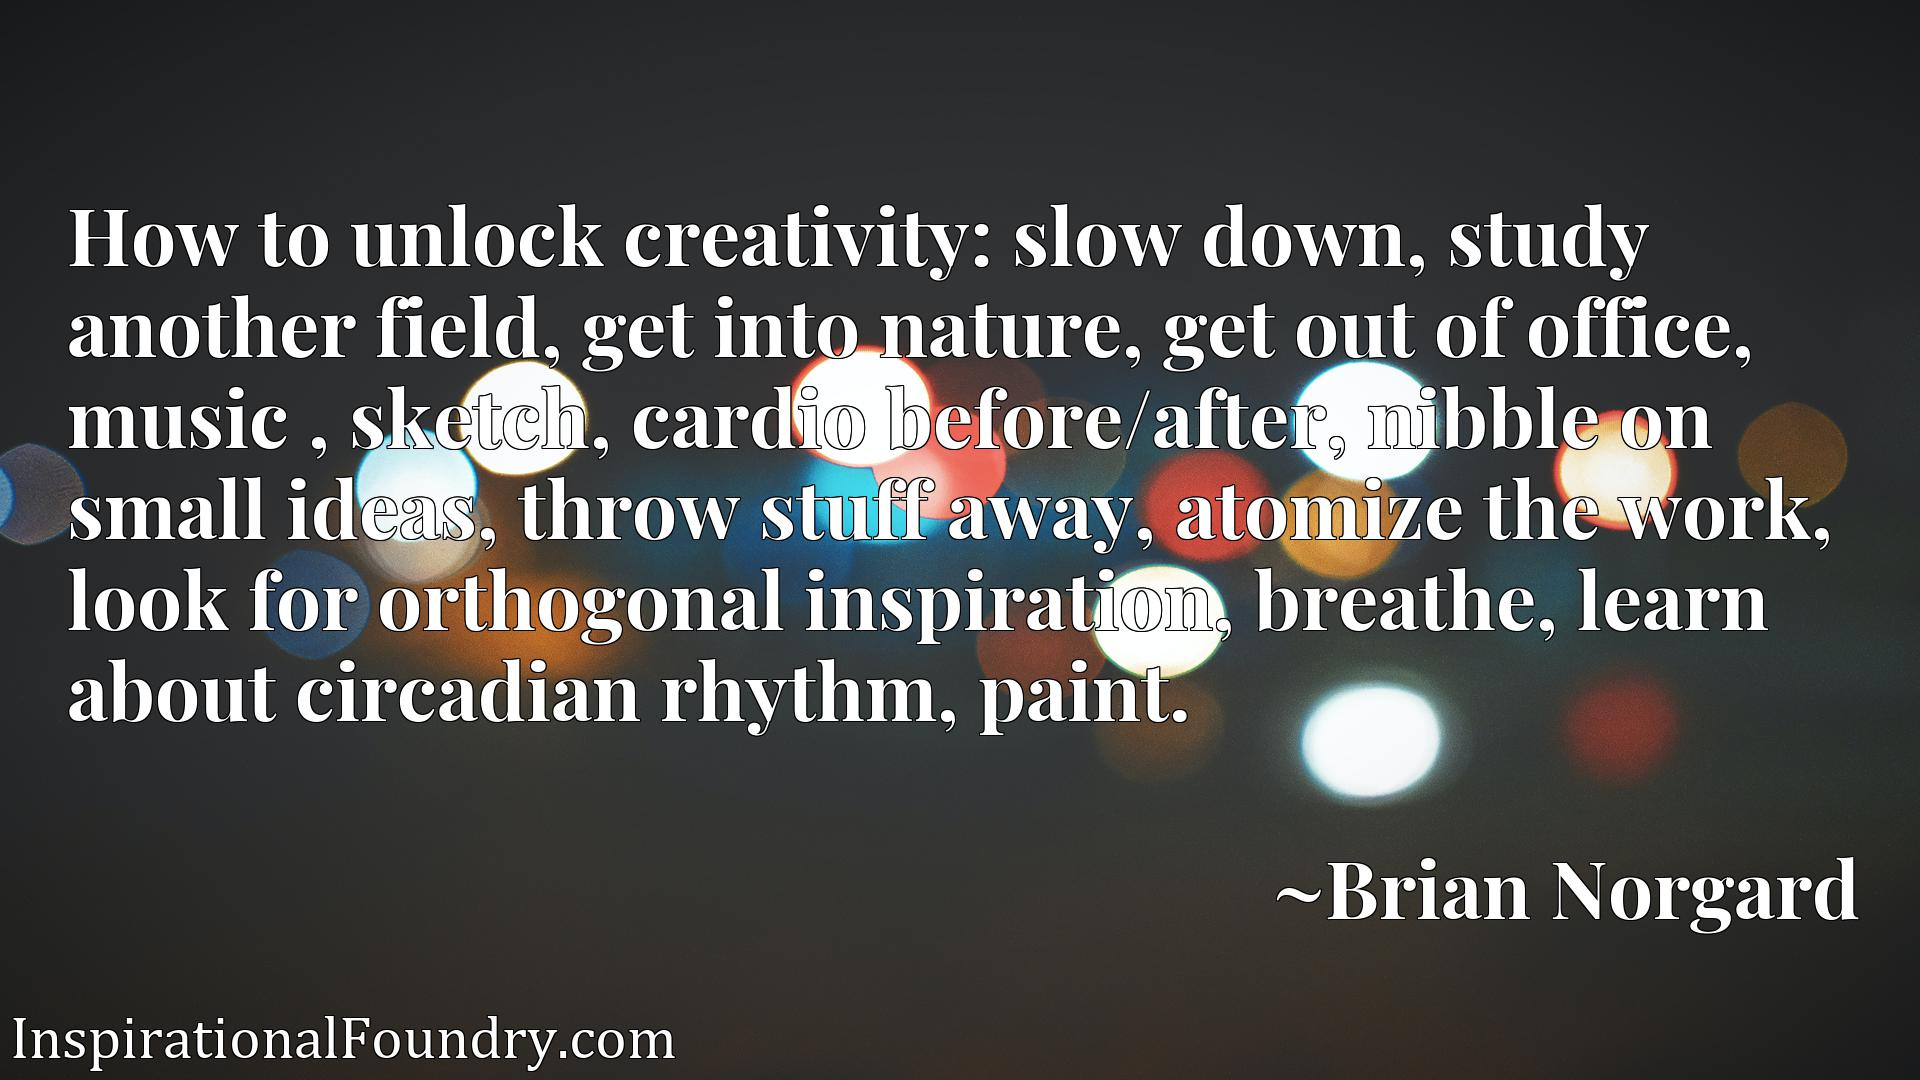 How to unlock creativity: slow down, study another field, get into nature, get out of office, music , sketch, cardio before/after, nibble on small ideas, throw stuff away, atomize the work, look for orthogonal inspiration, breathe, learn about circadian rhythm, paint.